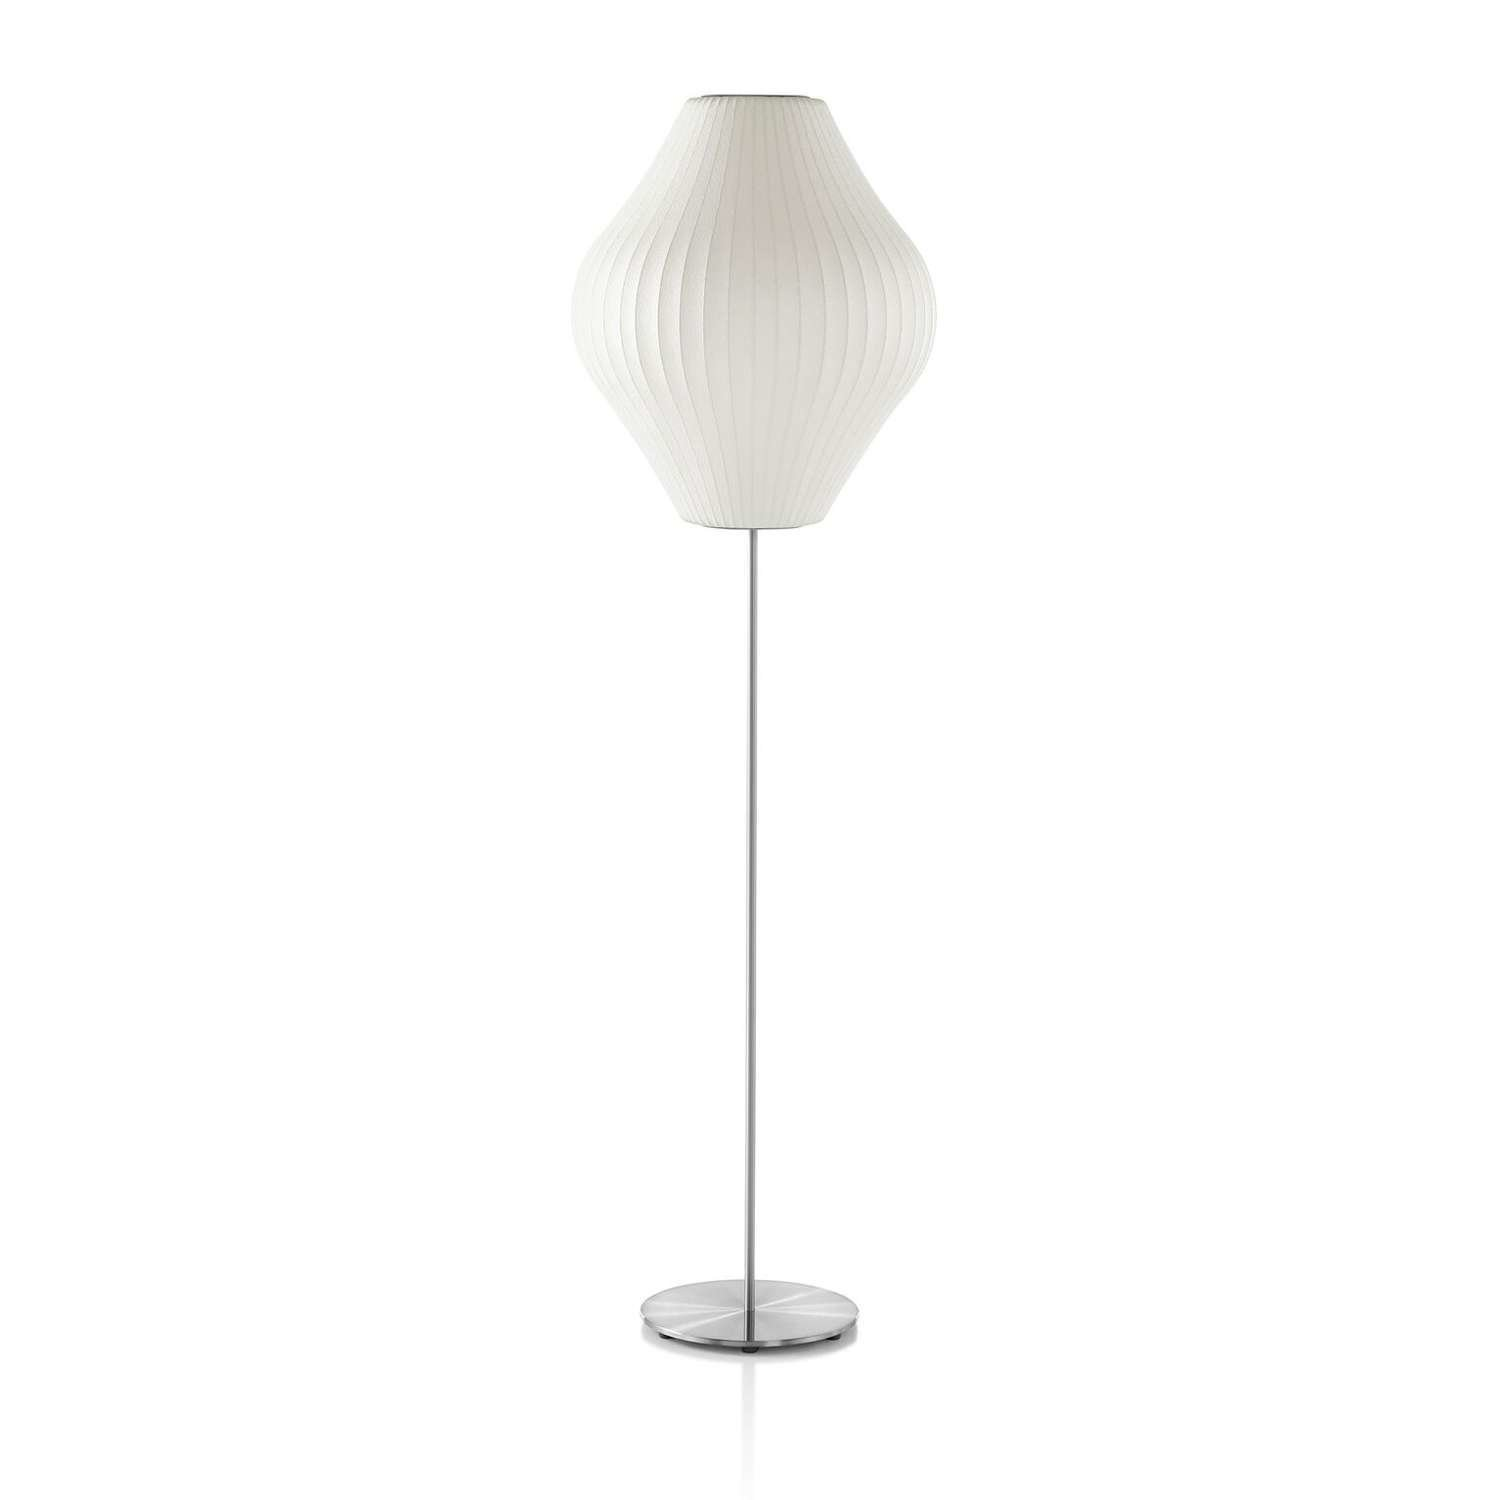 Nelson pear lotus floor lamp by lumens dwell nelson pear lotus floor lamp aloadofball Images